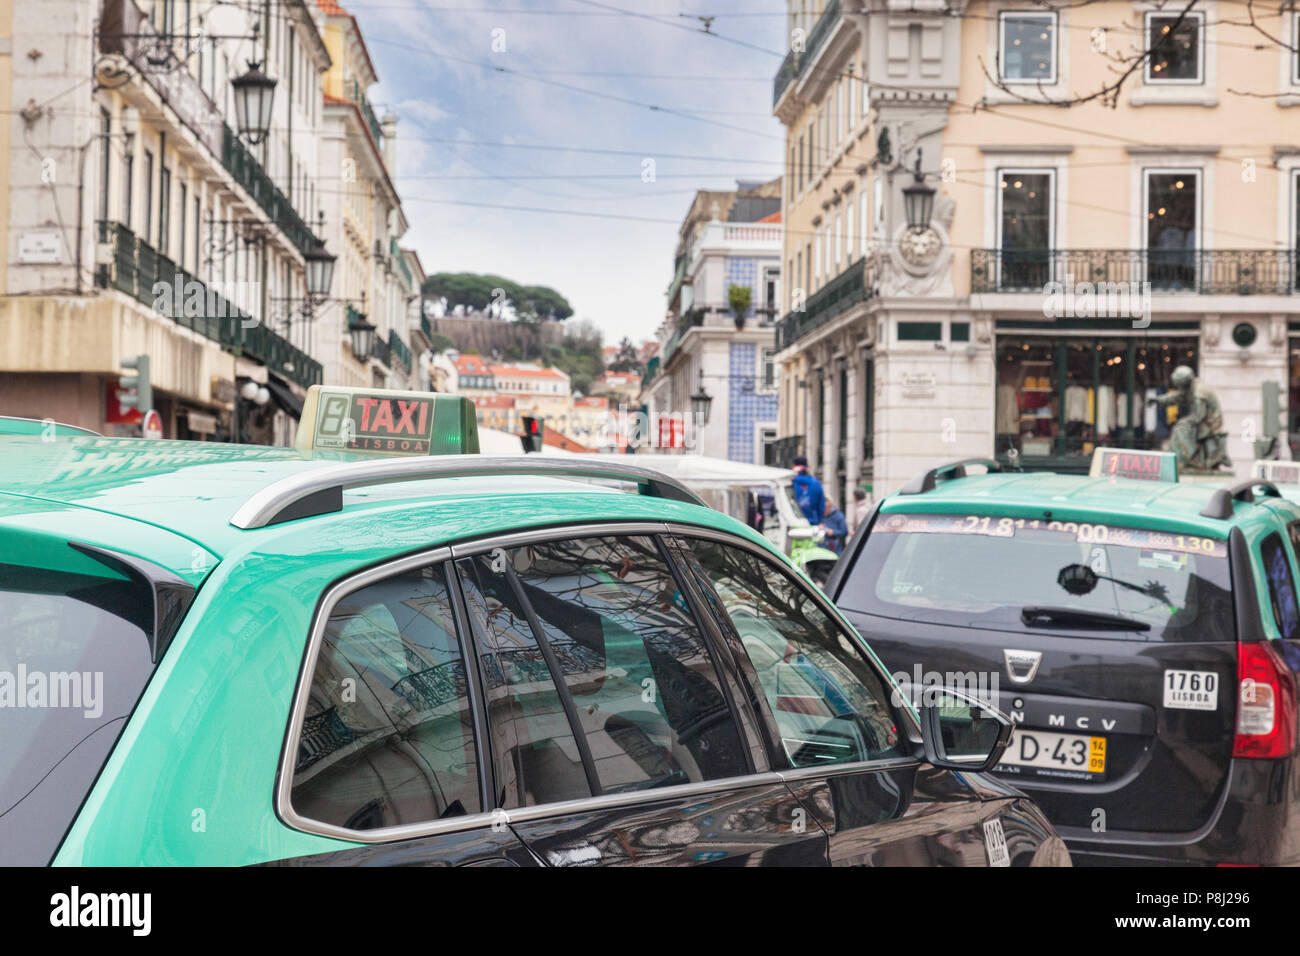 7 March 2018: Lisbon, Portugal - Taxi cabs bumper to bumper in the central city. Focus on foreground. - Stock Image